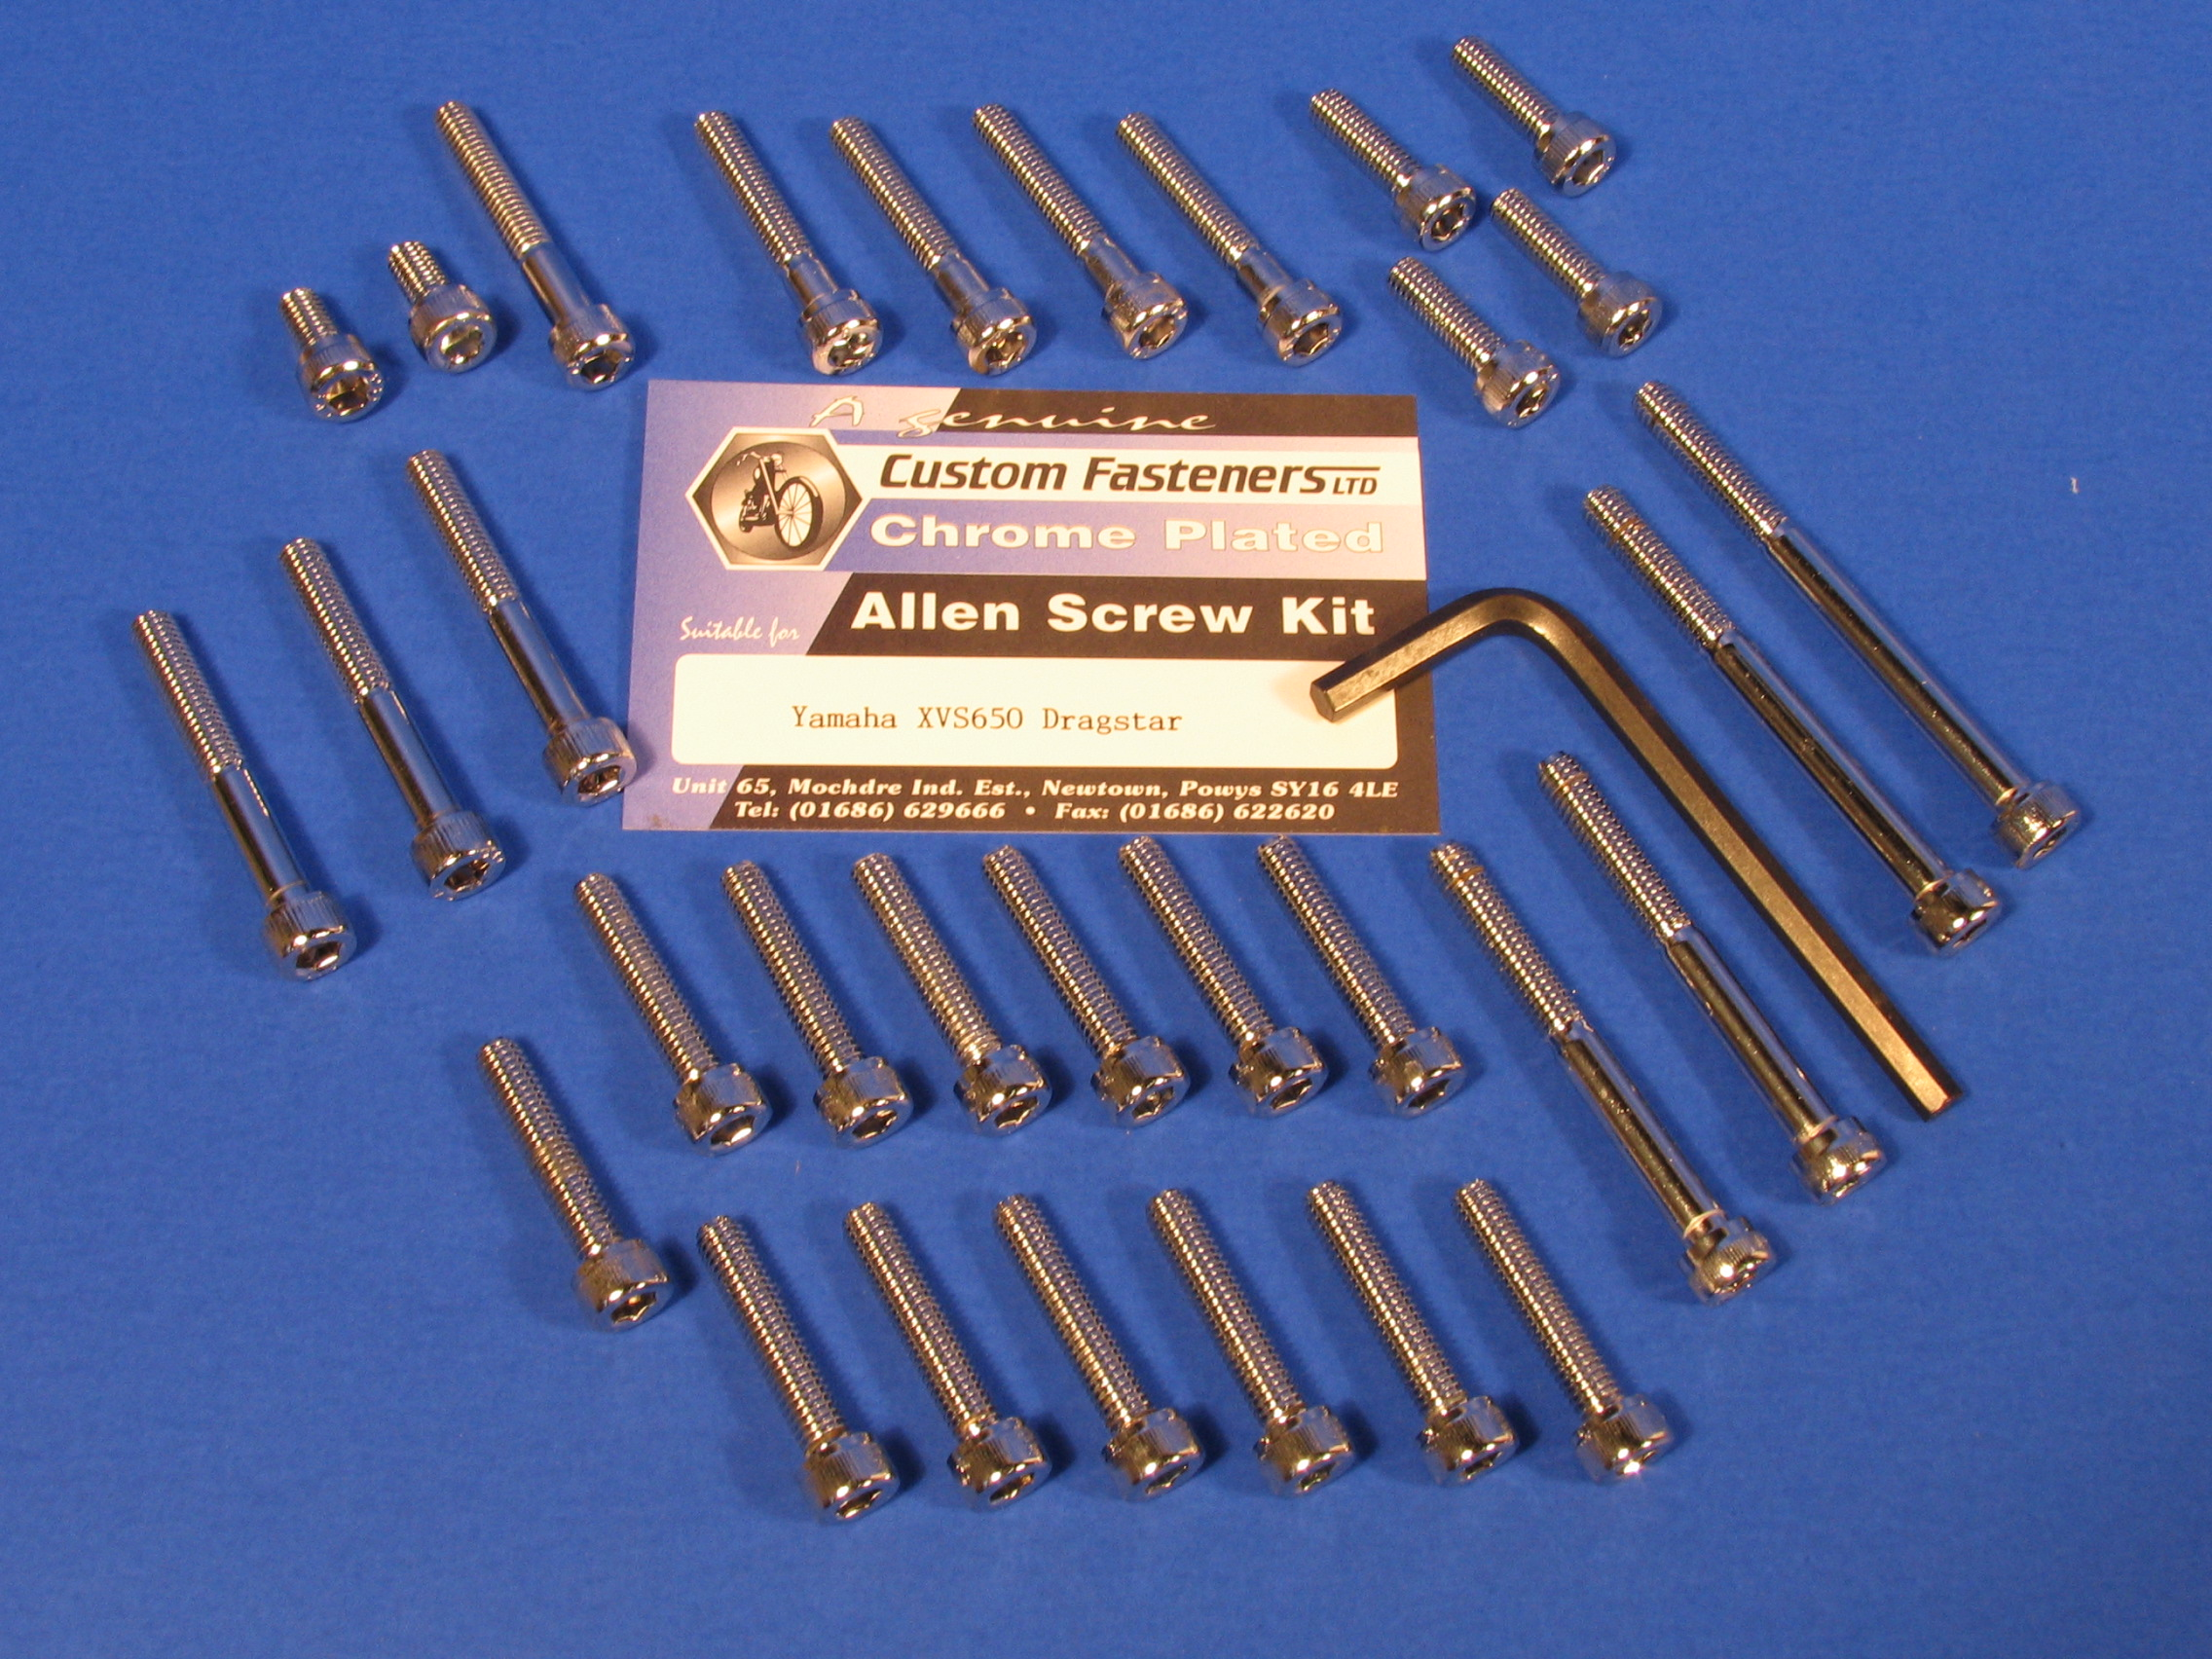 Yamaha Allen Screw Kits